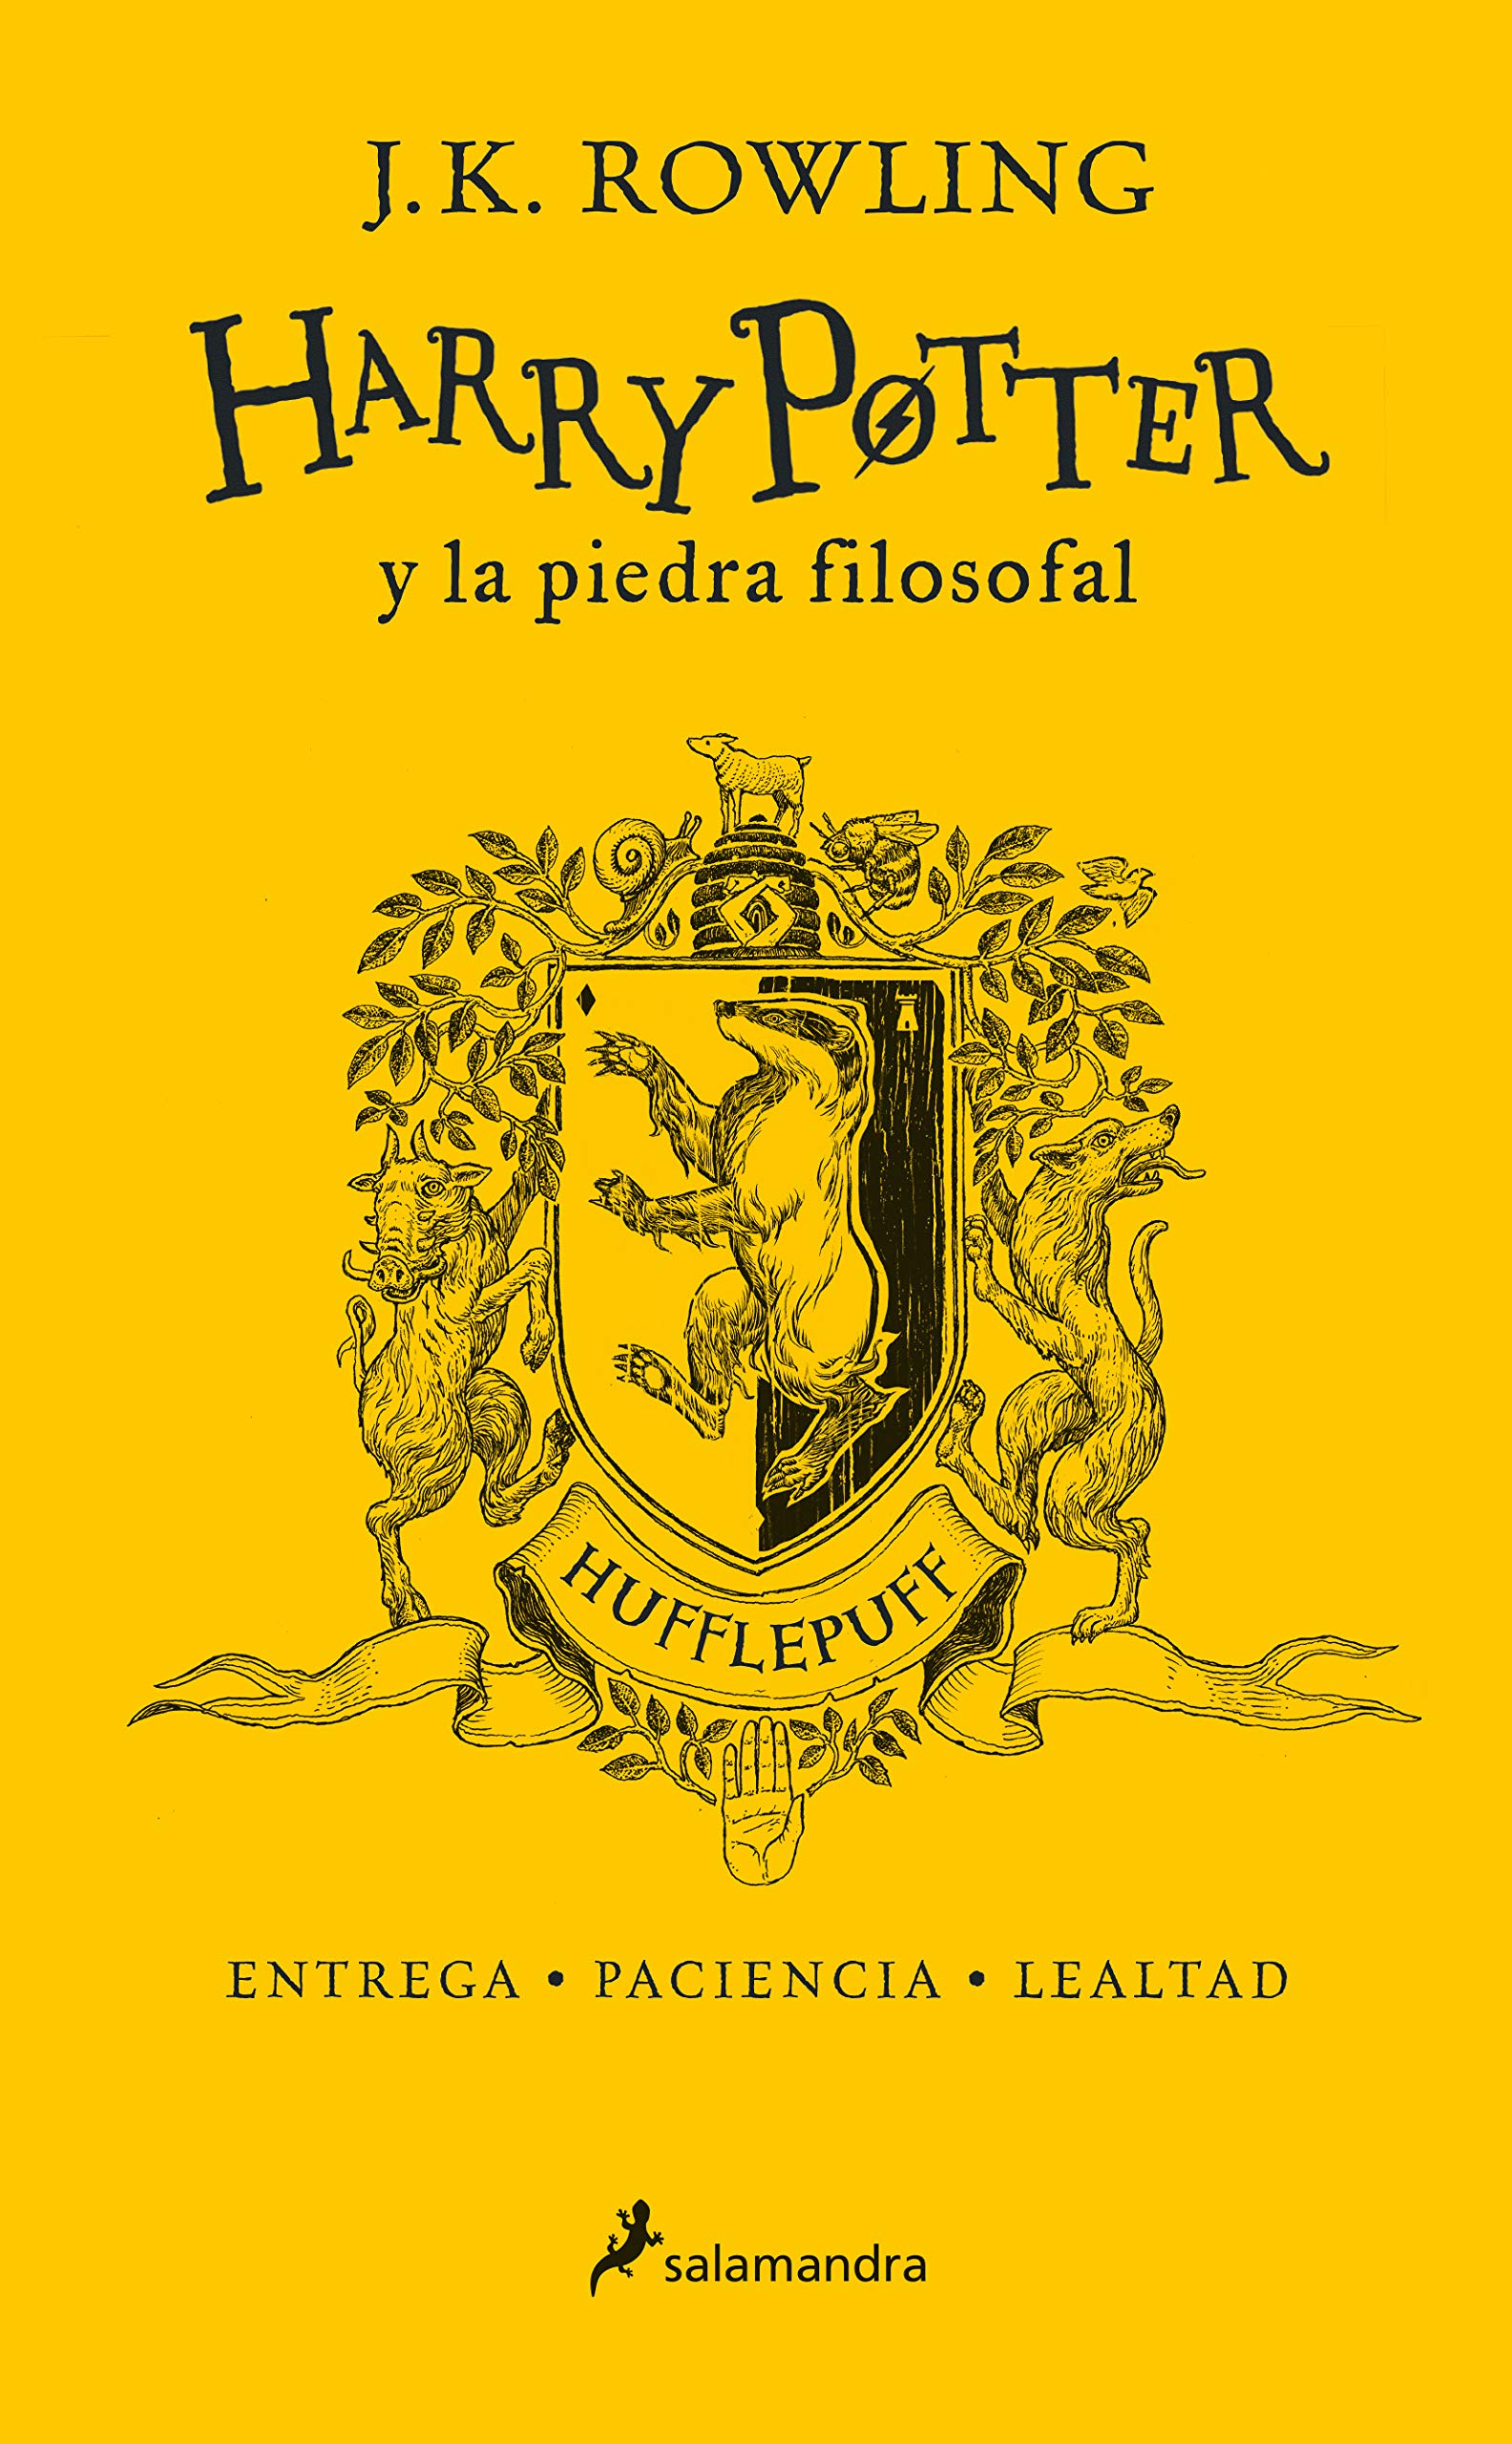 Harry Potter Hufflepuff.jpg